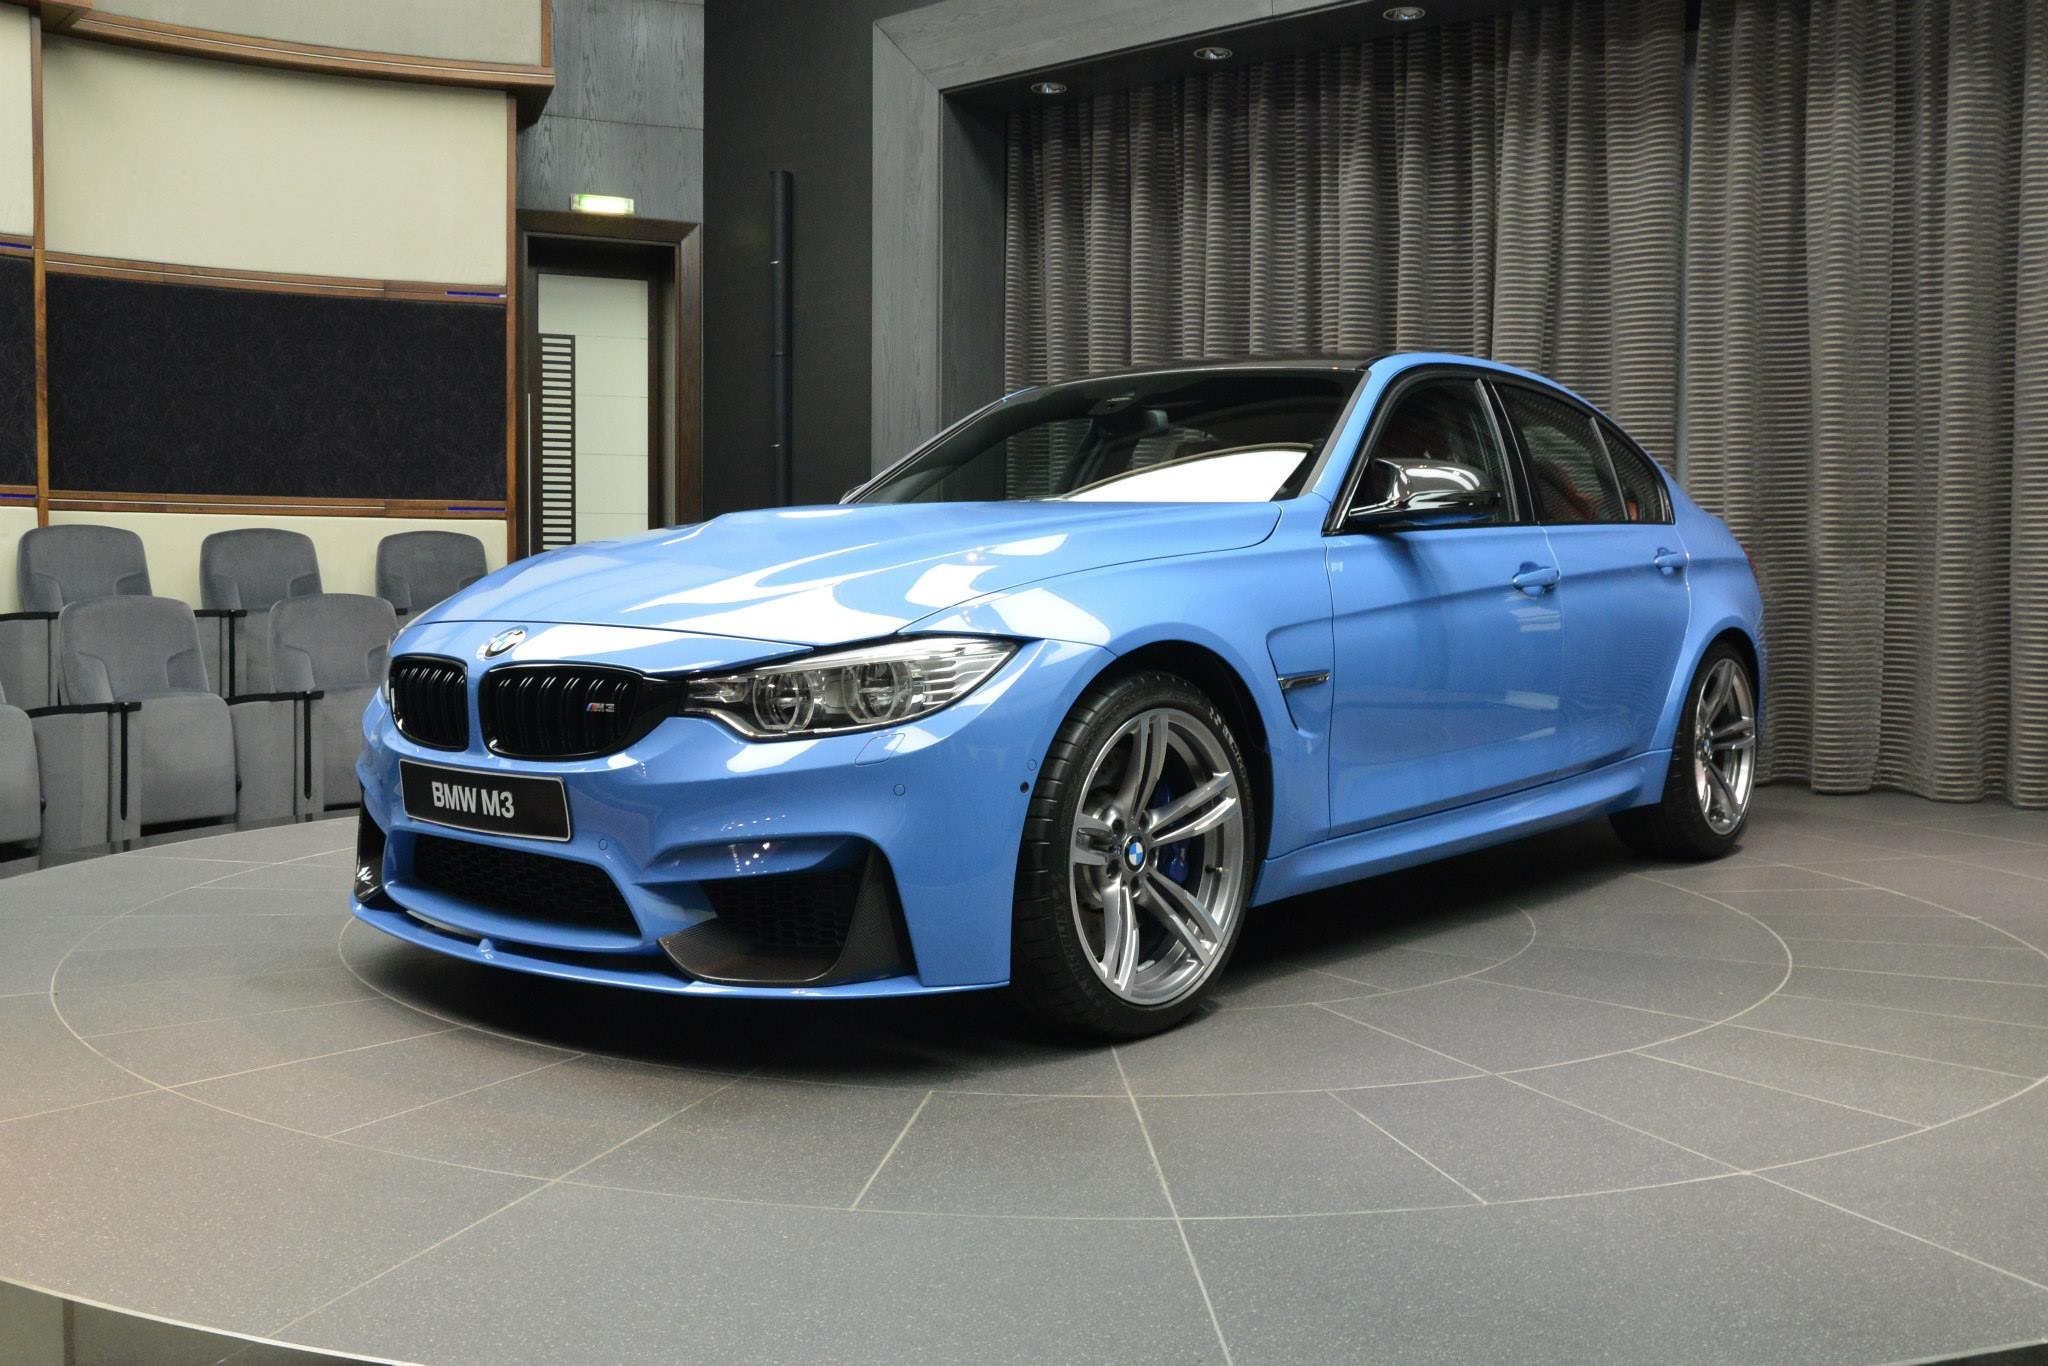 BMW M Accessories for the BMW M3 F80